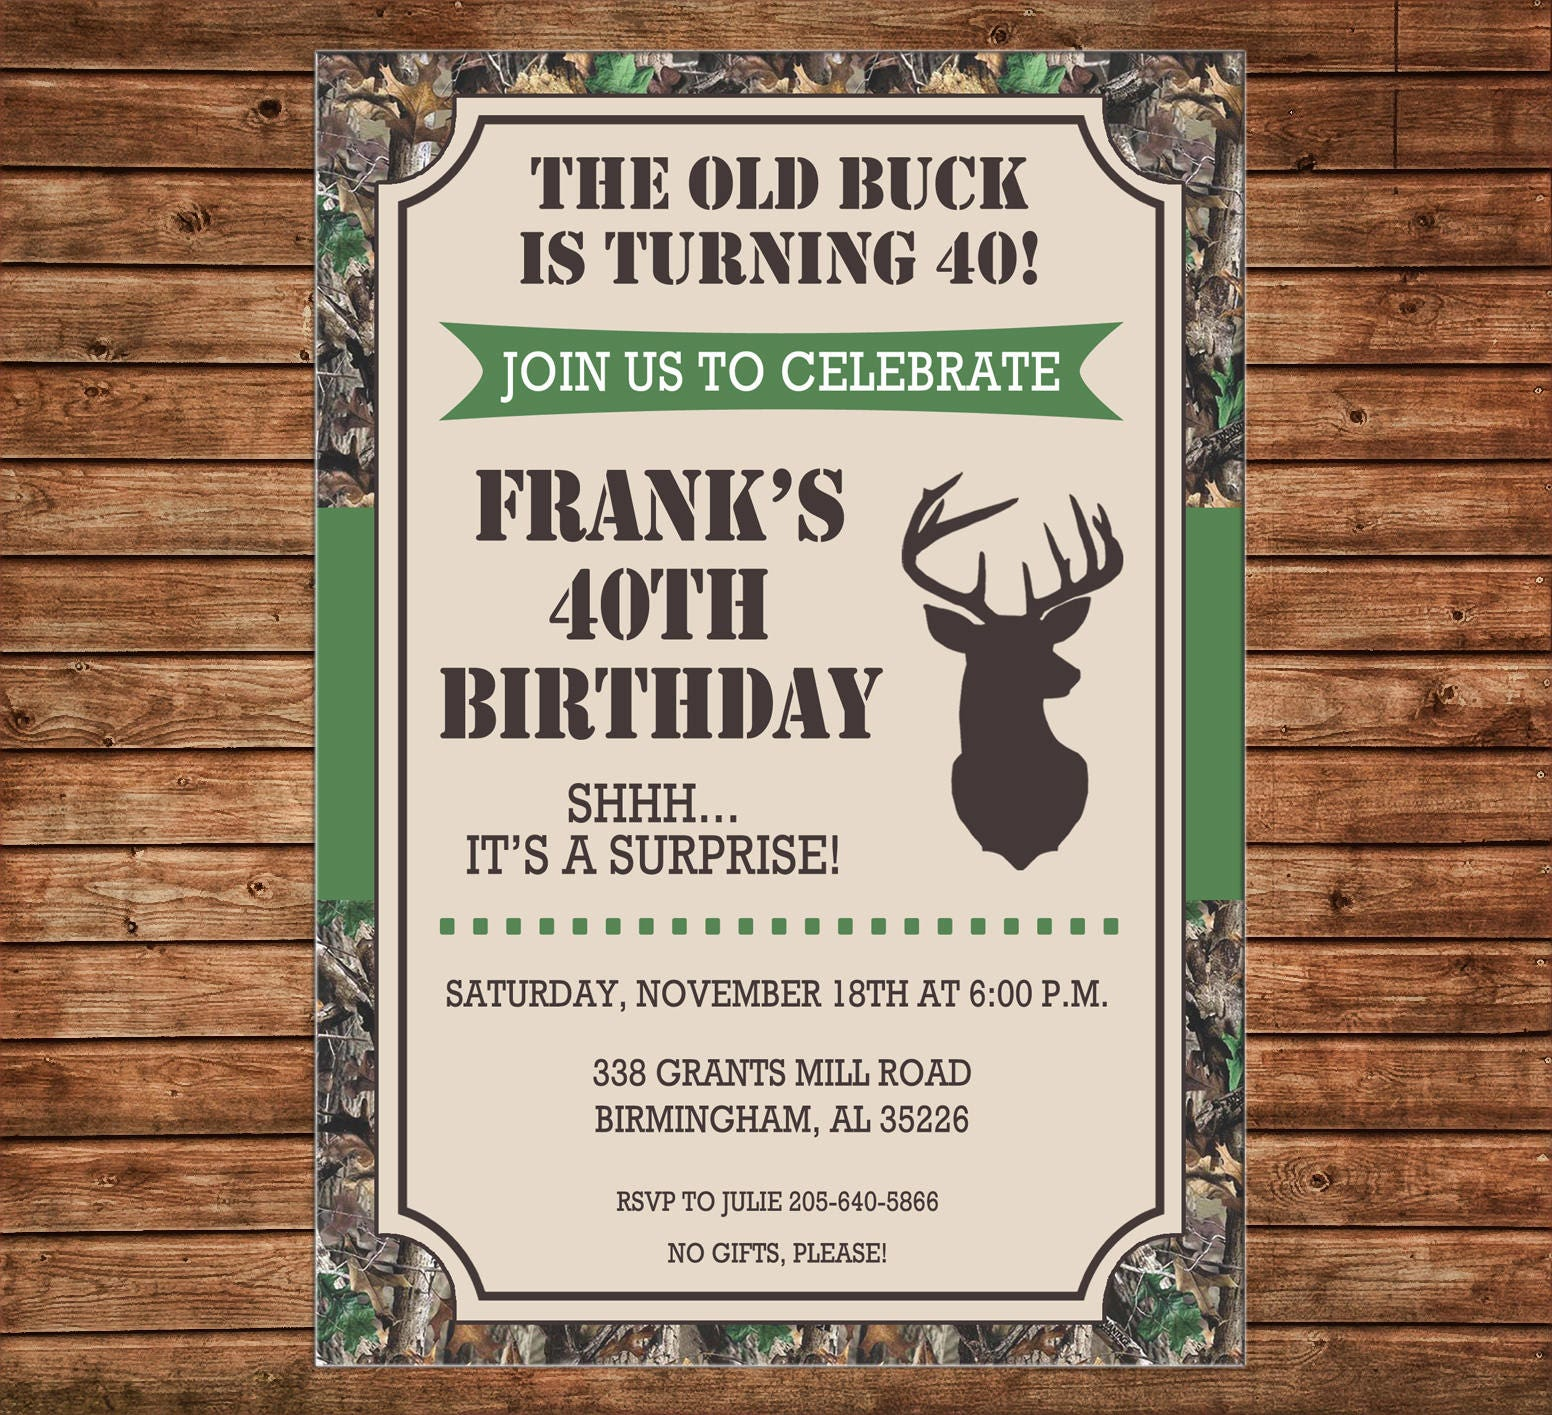 Boy Invitation Old Buck Deer Camo Outdoors Birthday Party Can Personalize Colors Wording Printable File Or Printed Cards